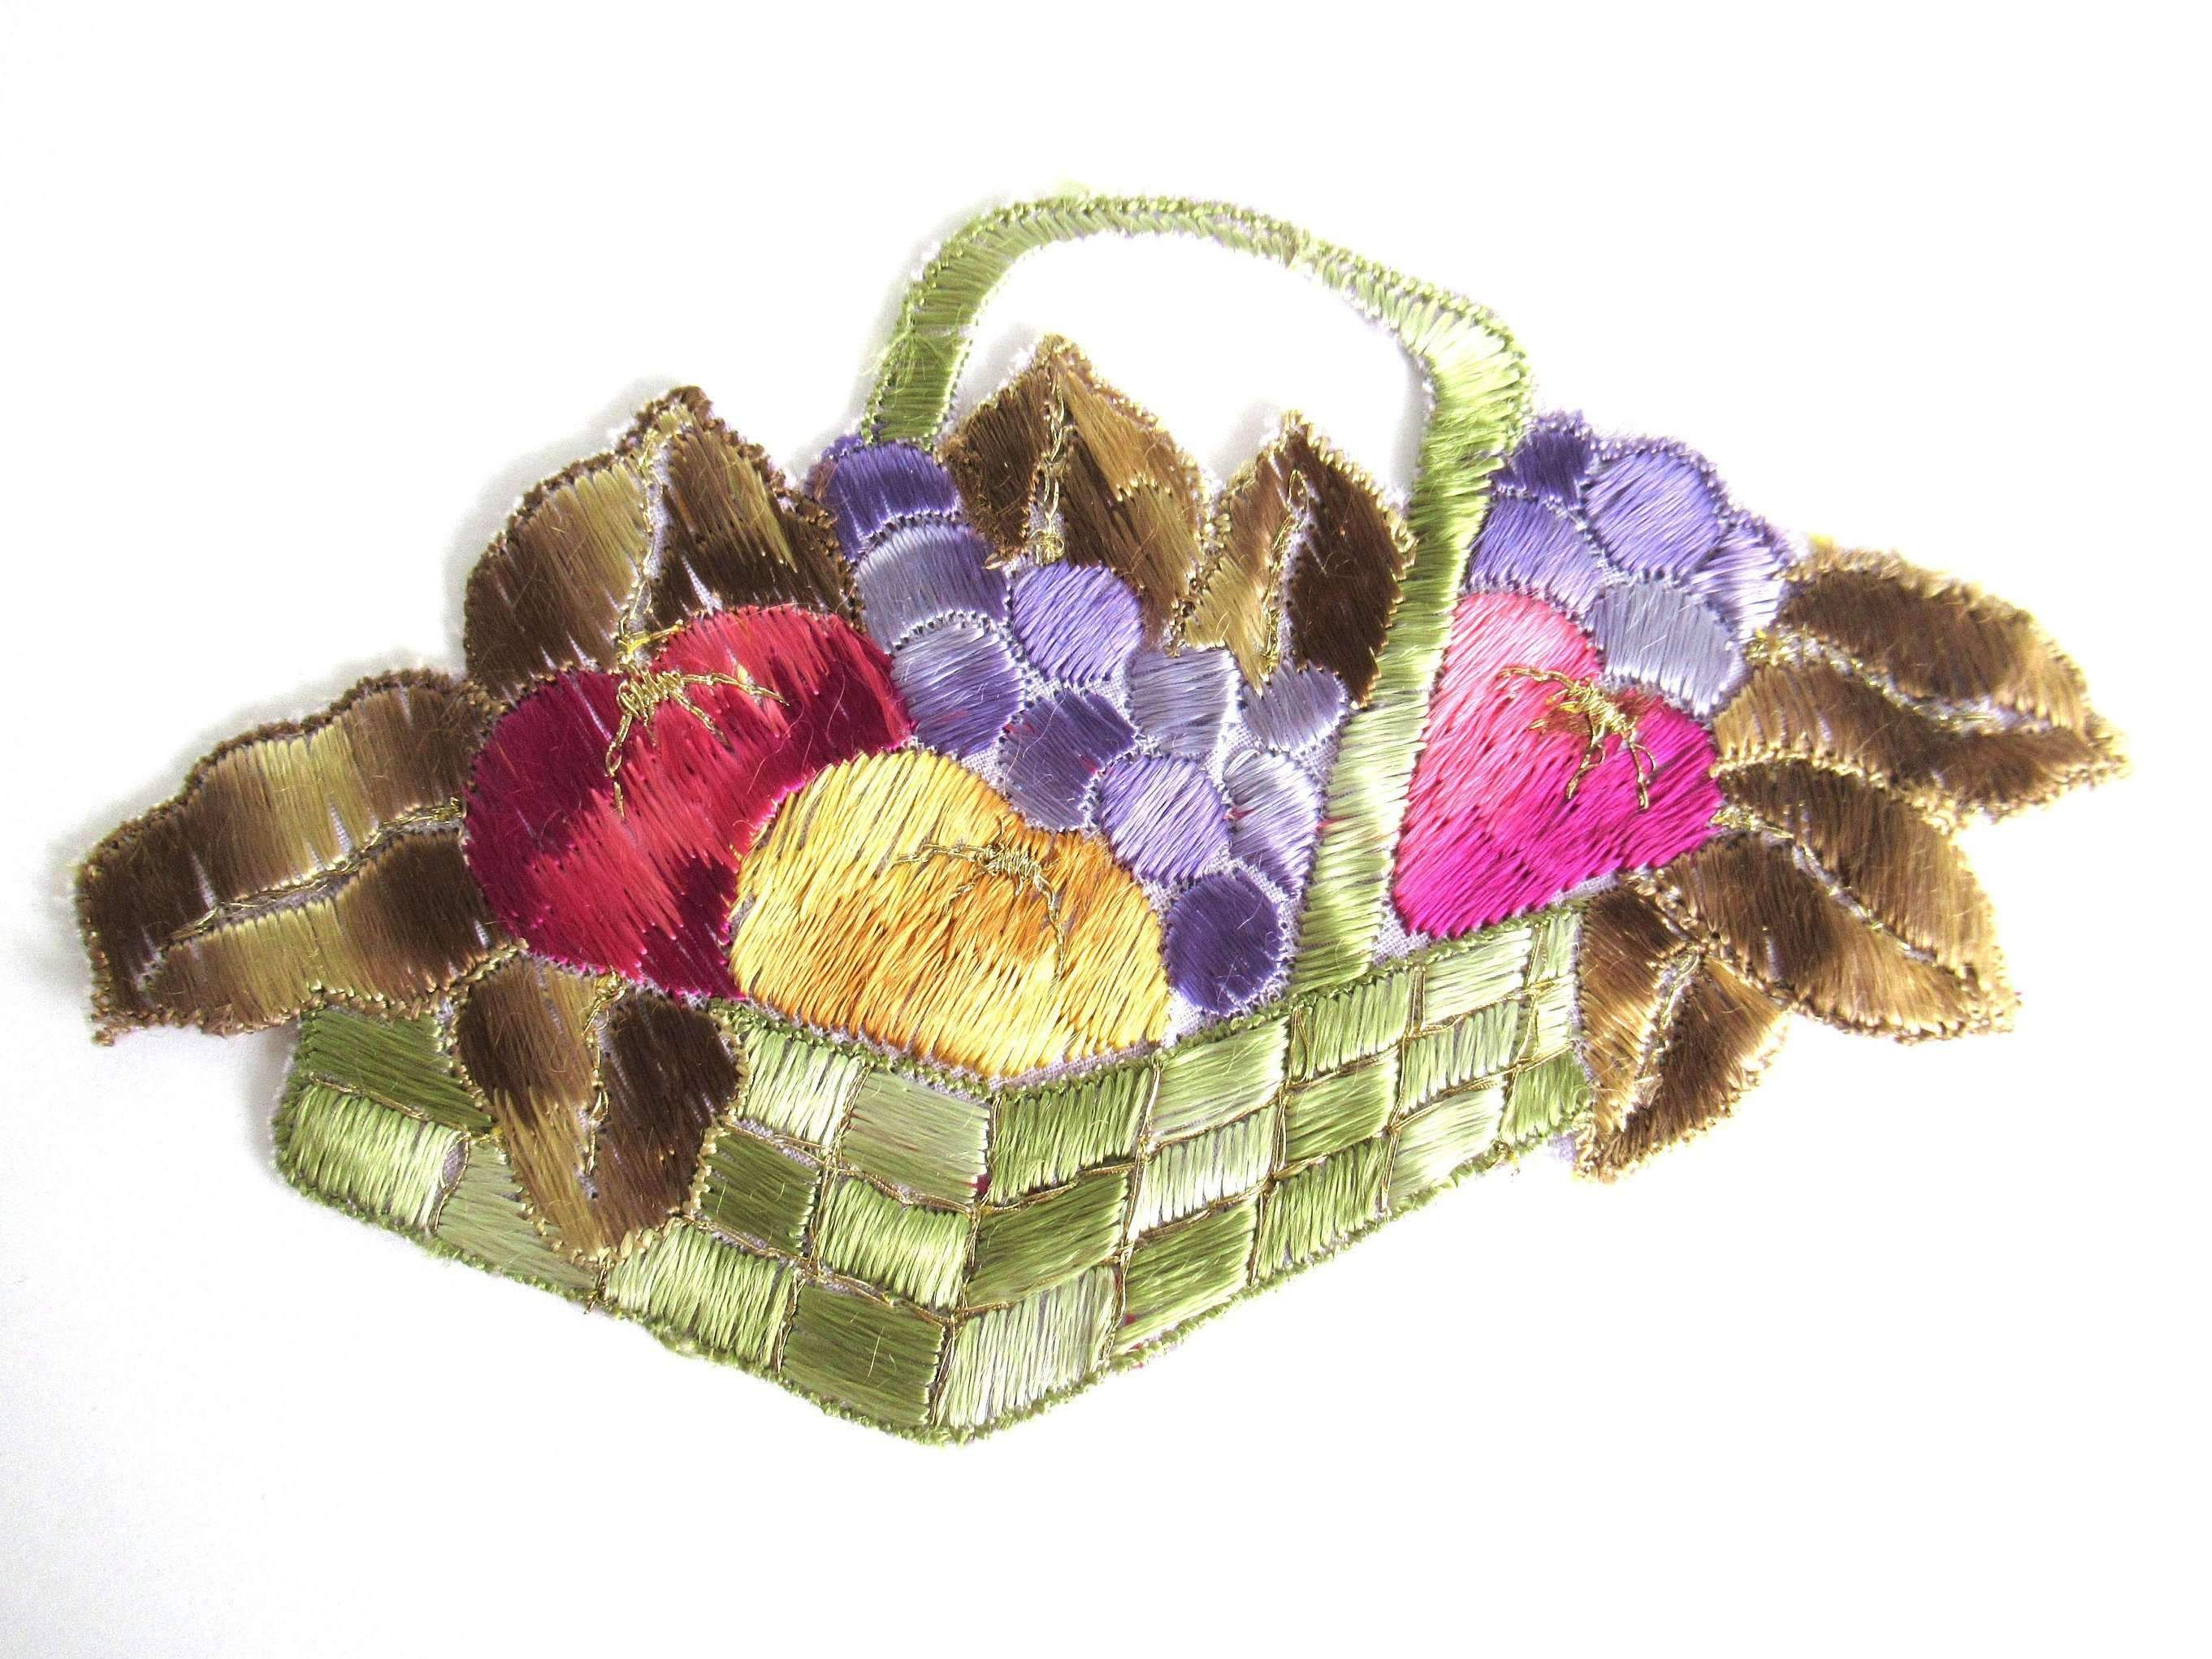 Fruit basket applique 1930s vintage embroidered applique. vintage